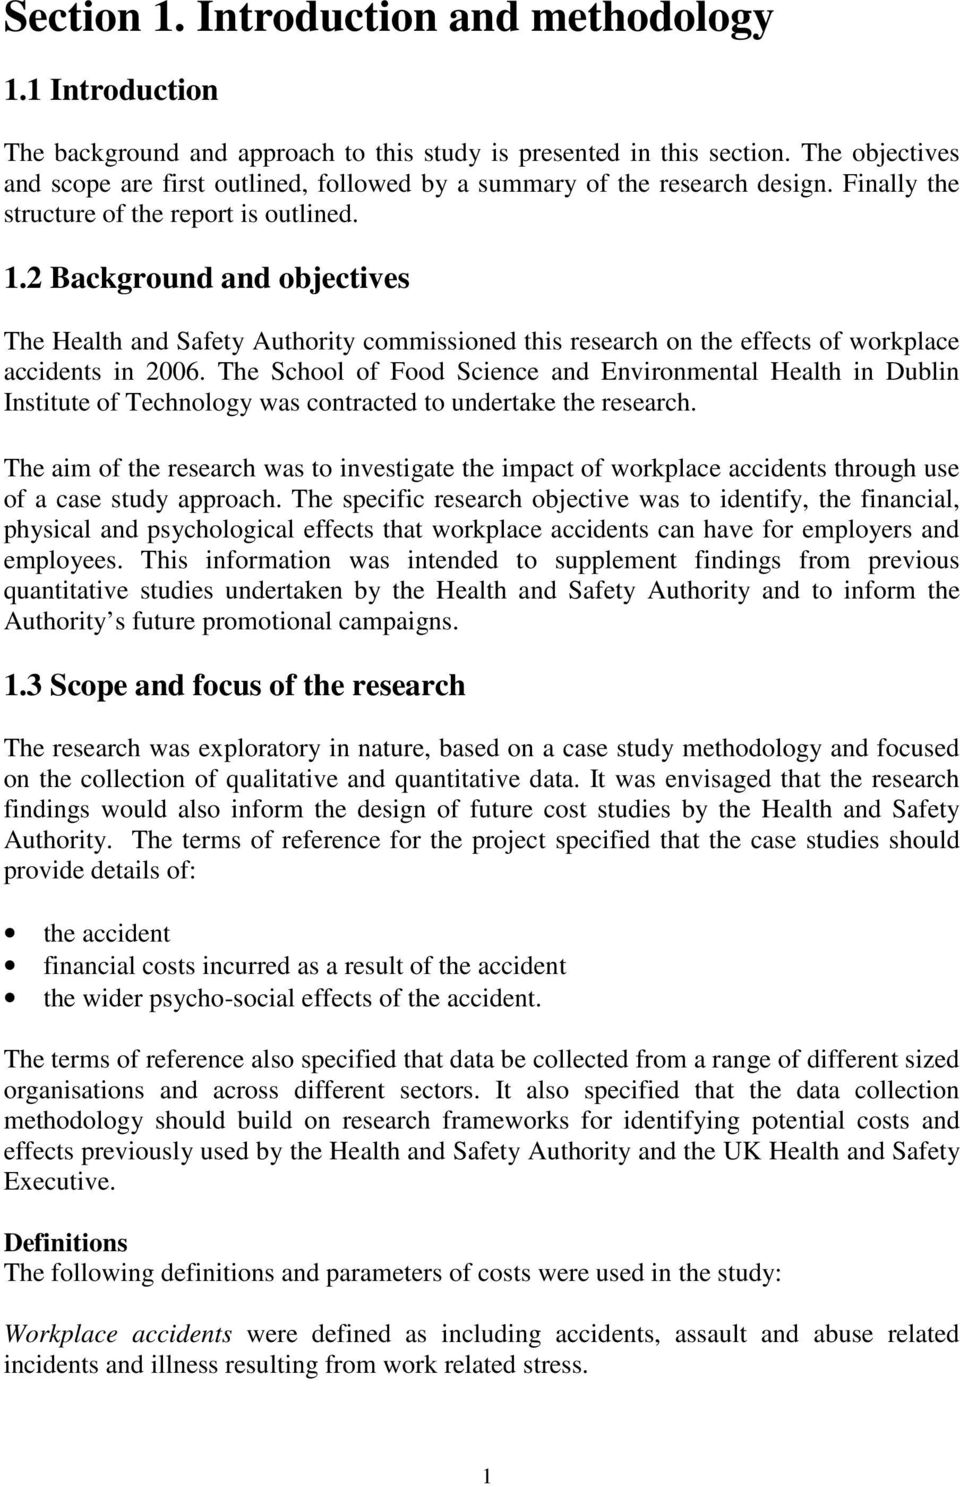 2 Background and objectives The Health and Safety Authority commissioned this research on the effects of workplace accidents in 2006.